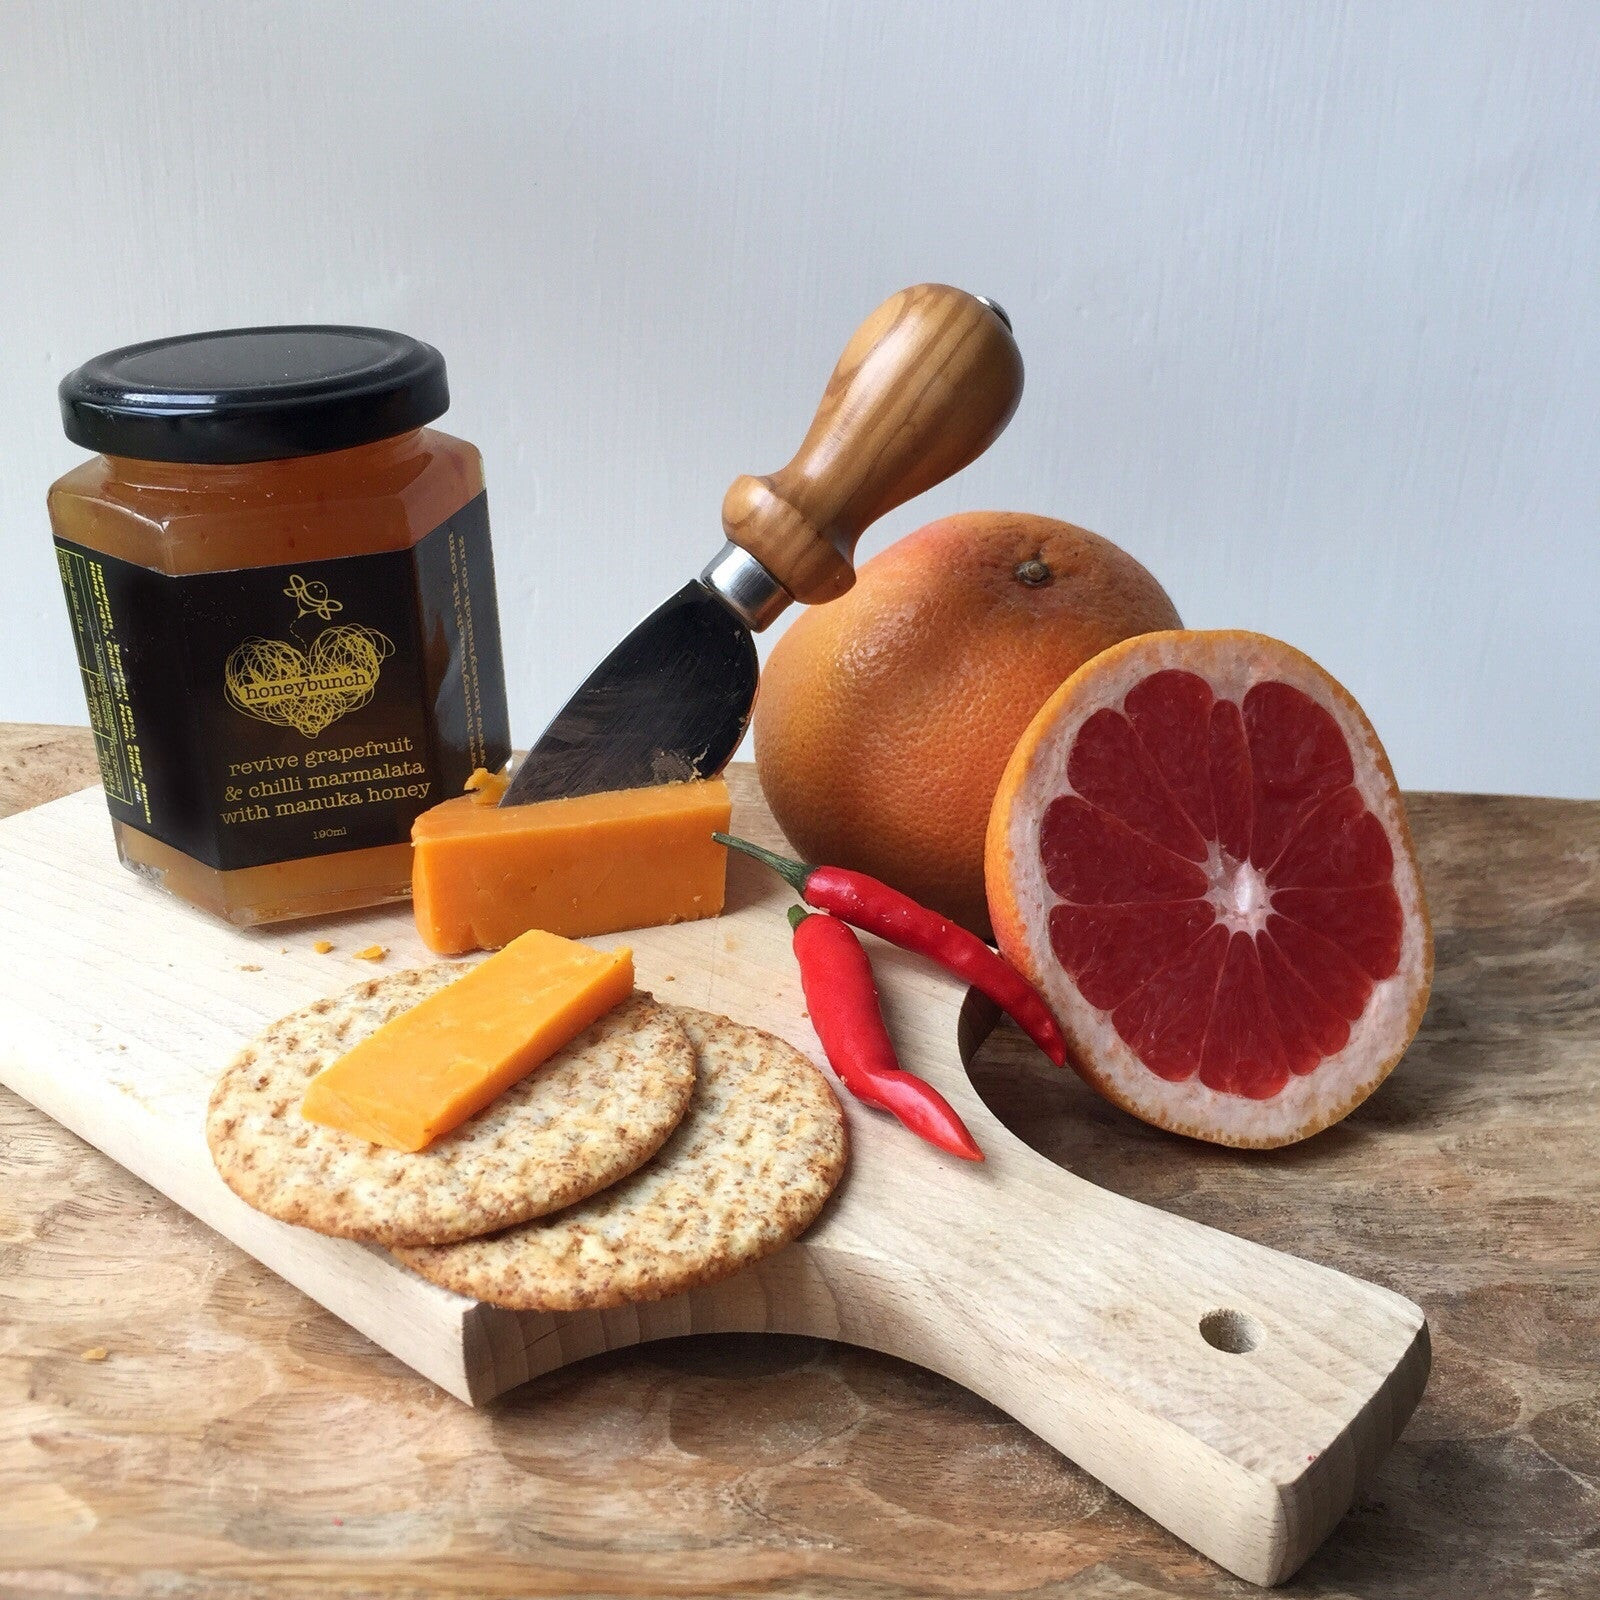 revive grapefruit chilli marmalata infused with manuka honey